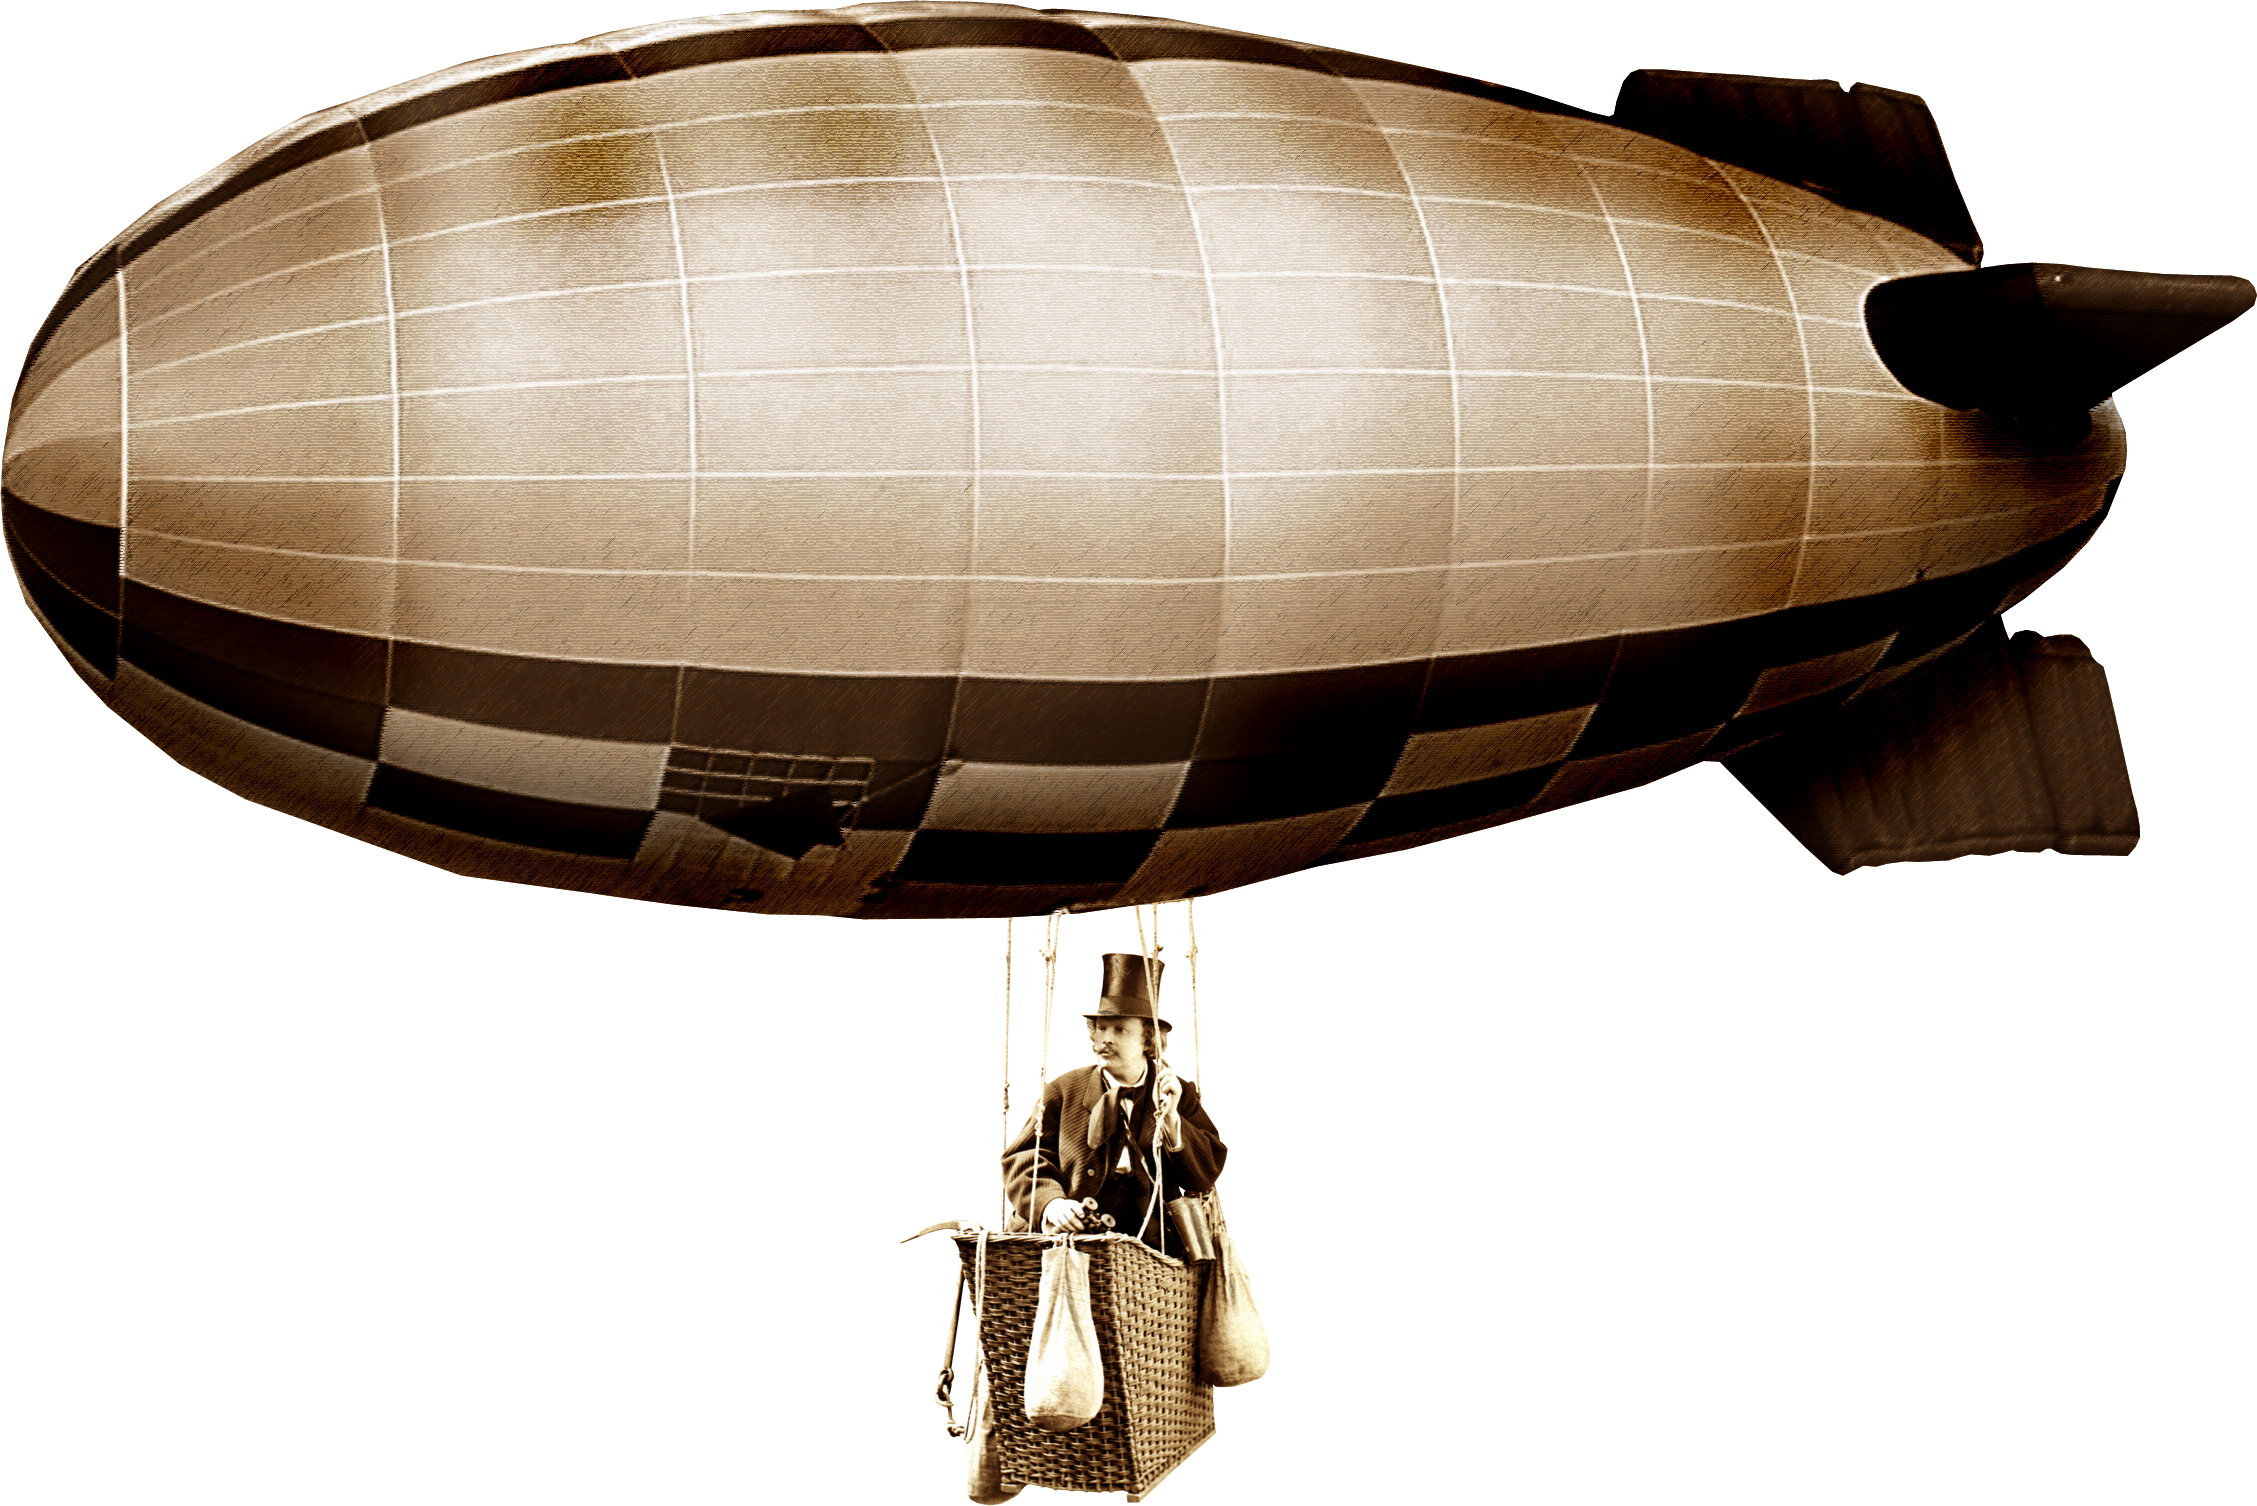 Airship transparent background png. Steampunk clipart blimp